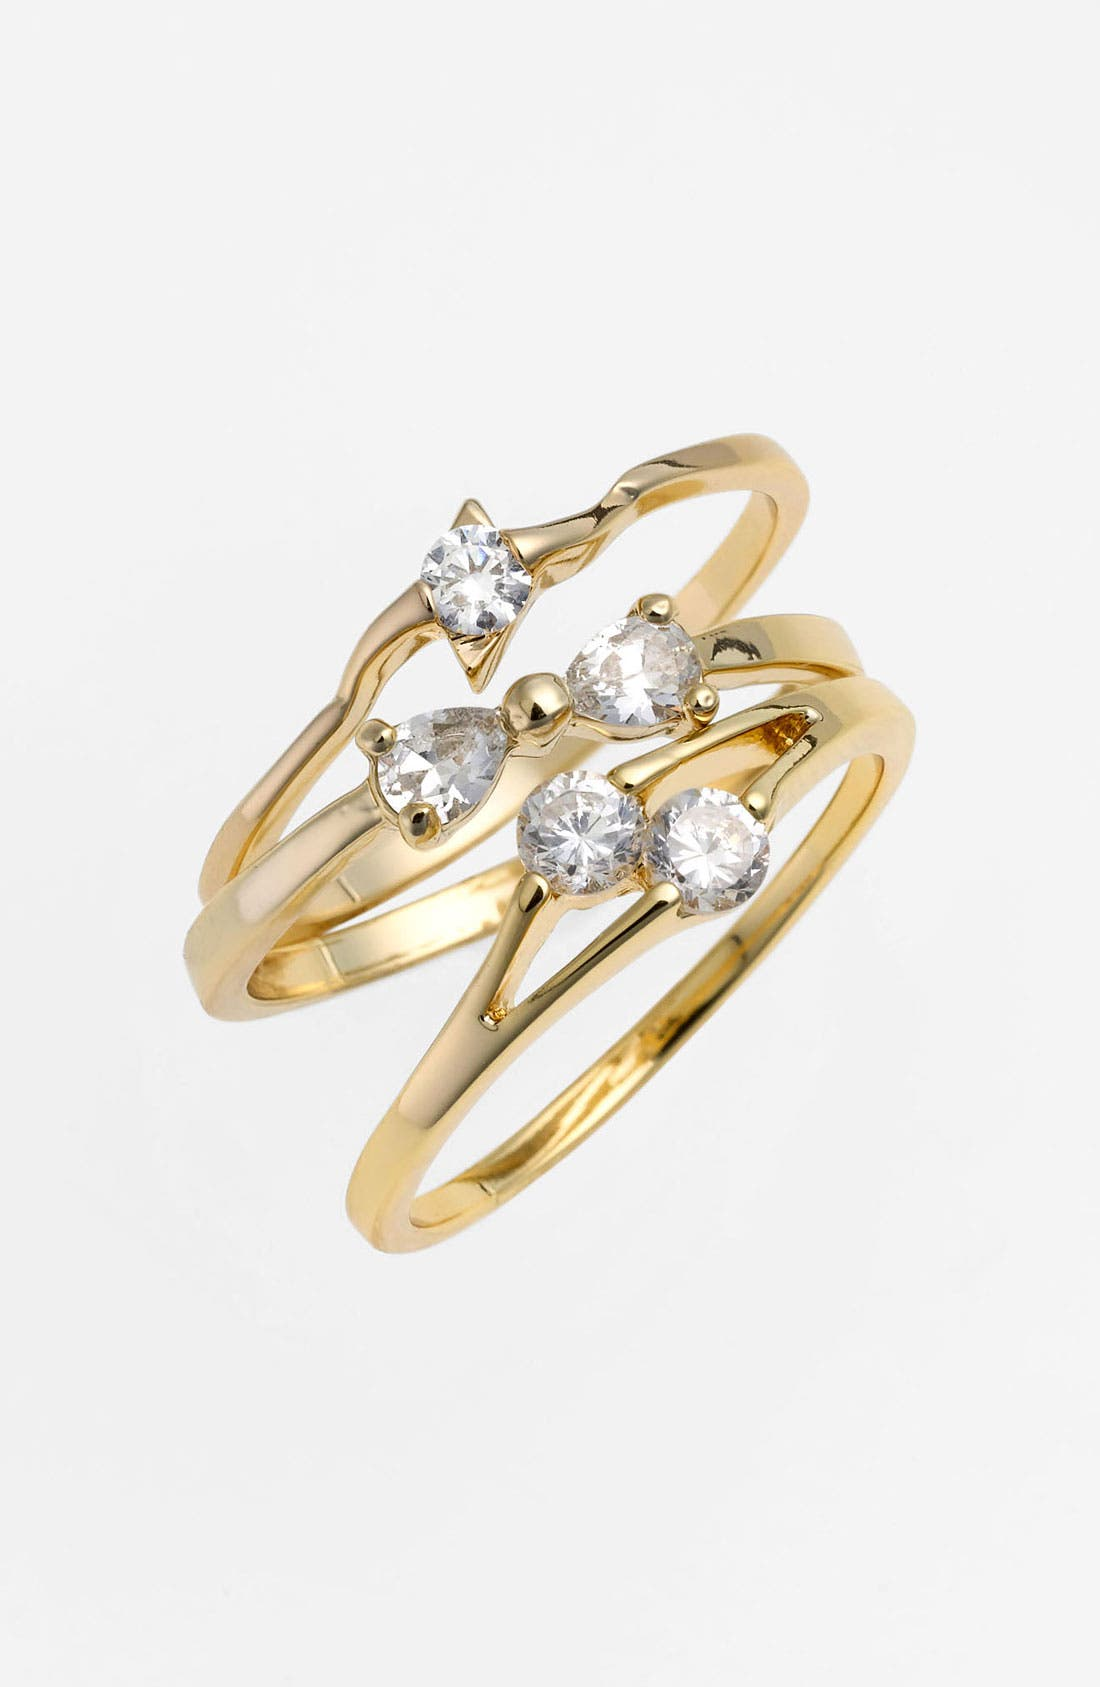 Alternate Image 1 Selected - Ariella Collection Stackable Cubic Zirconia Rings (Set of 3) (Nordstrom Exclusive)